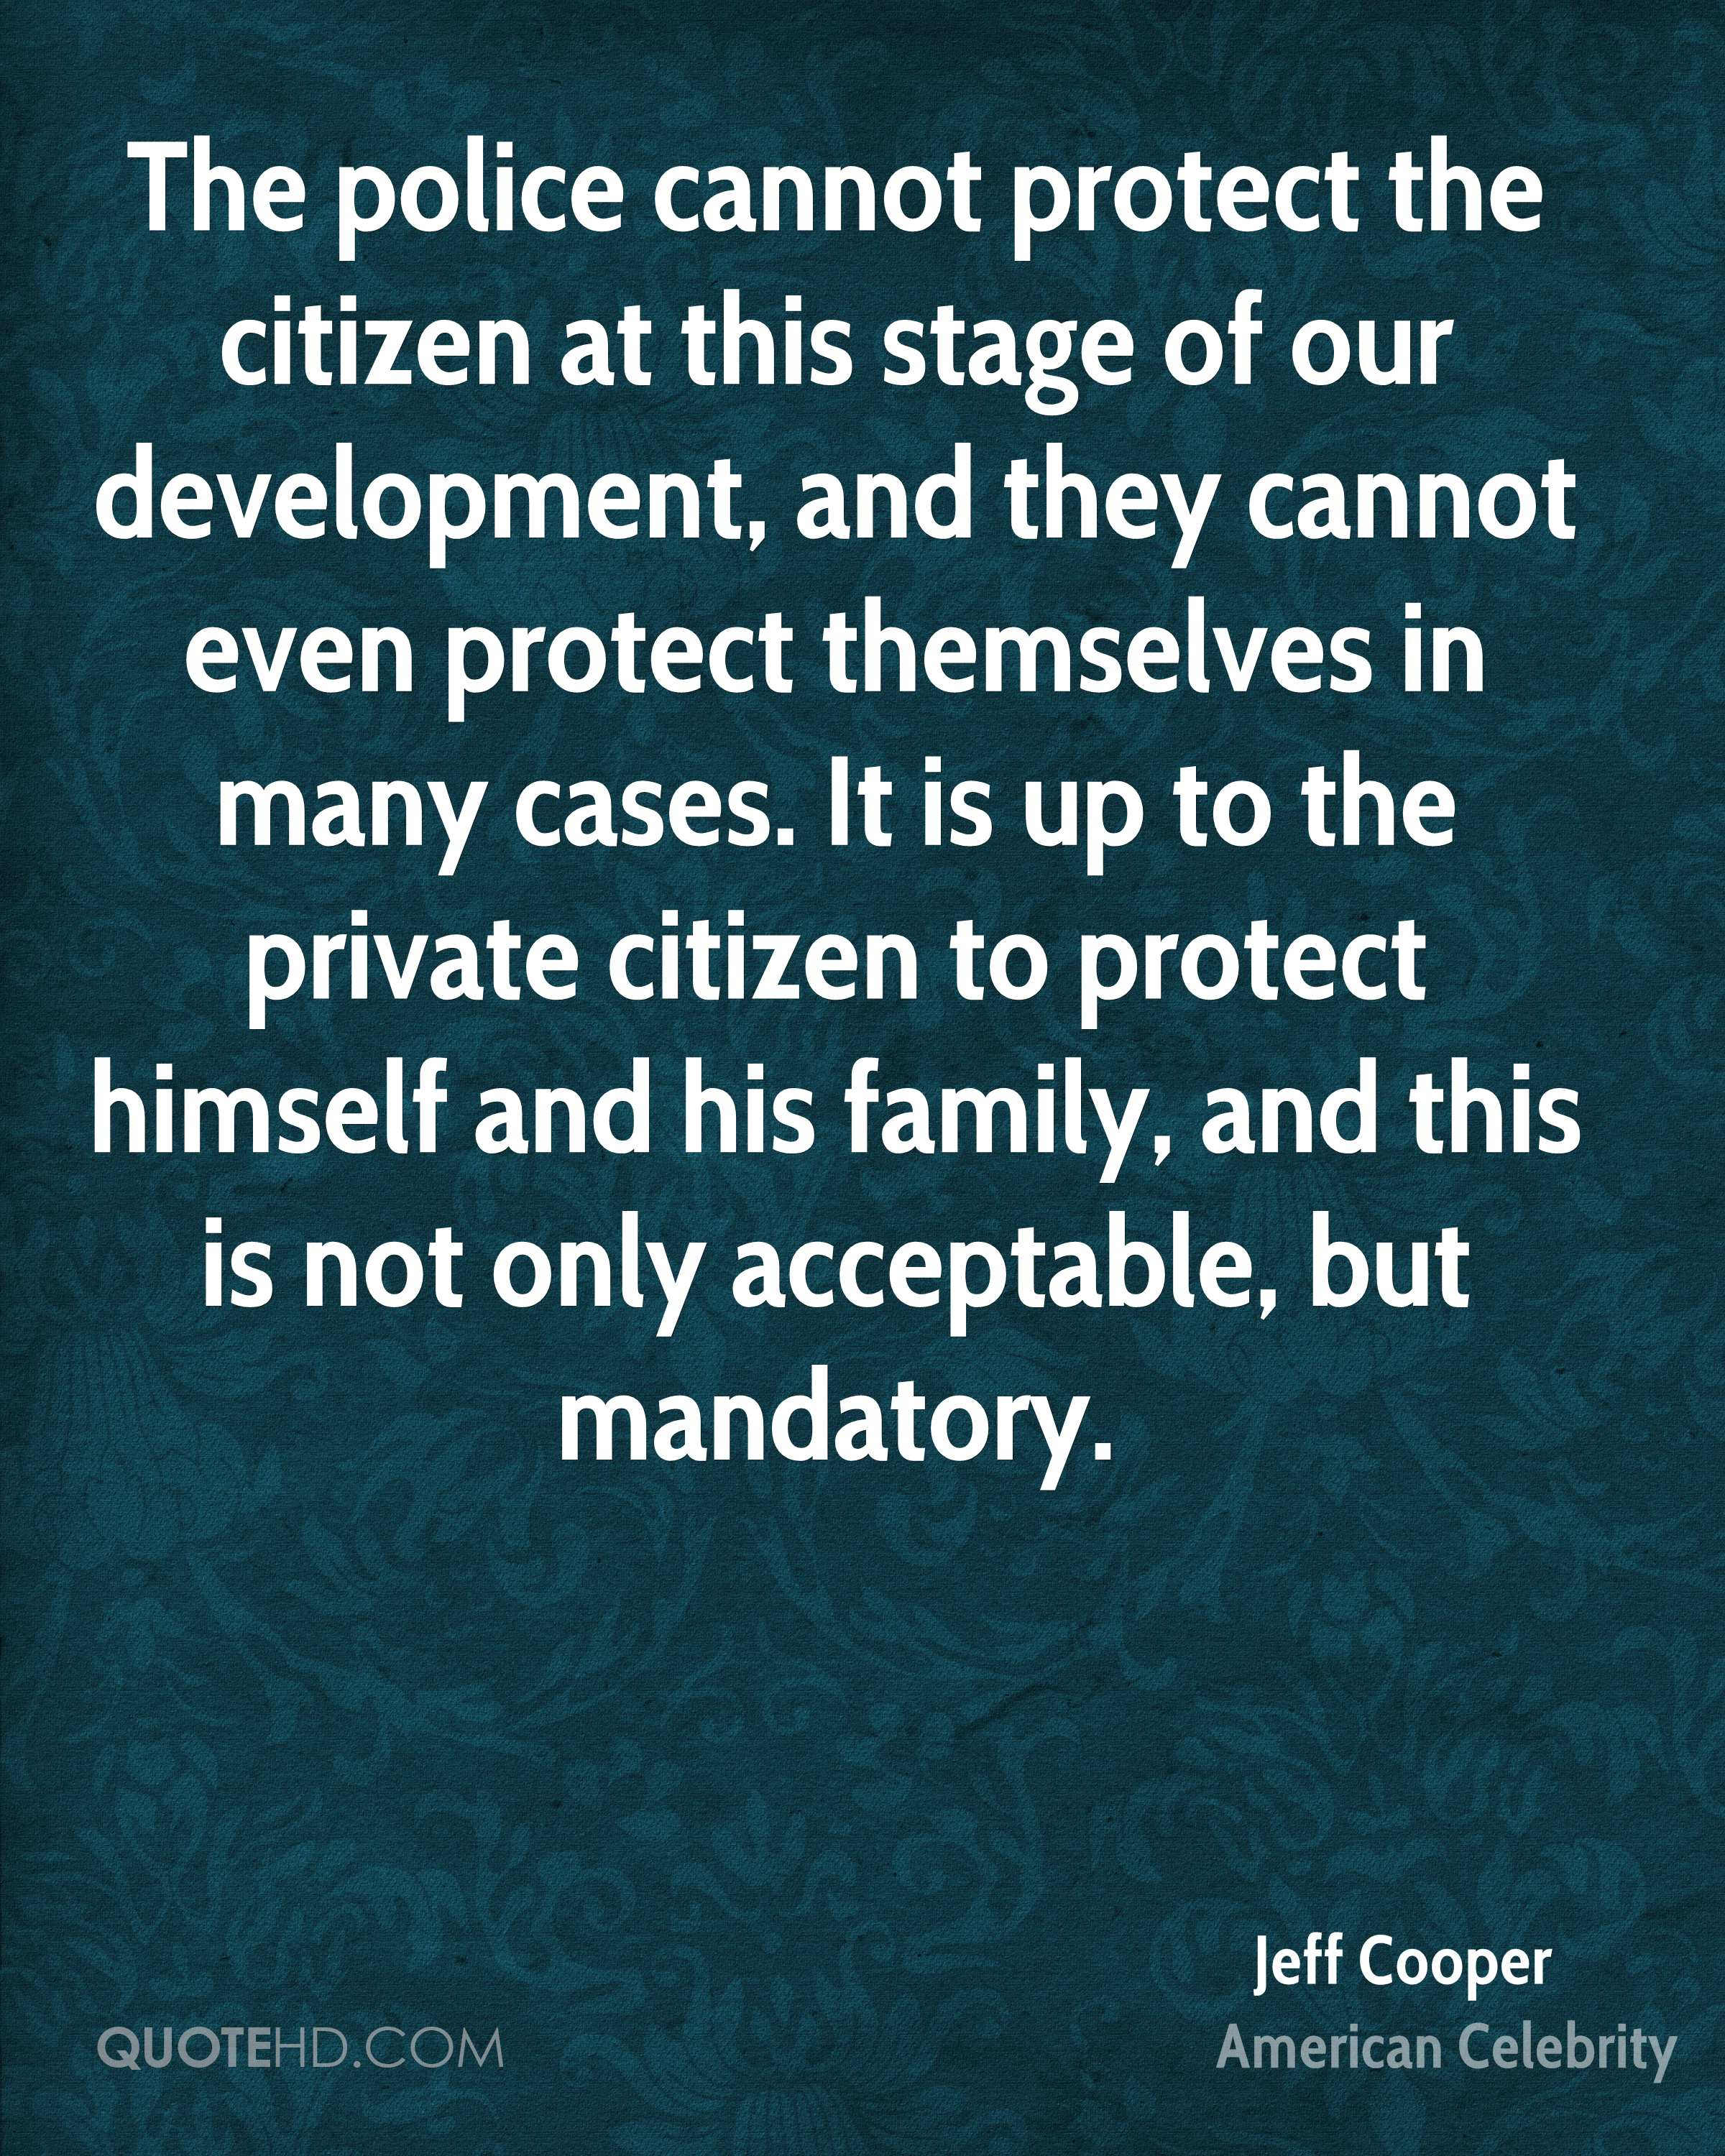 The police cannot protect the citizen at this stage of our development, and they cannot even protect themselves in many cases. It is up to the private citizen to protect himself and his family, and this is not only acceptable, but mandatory.